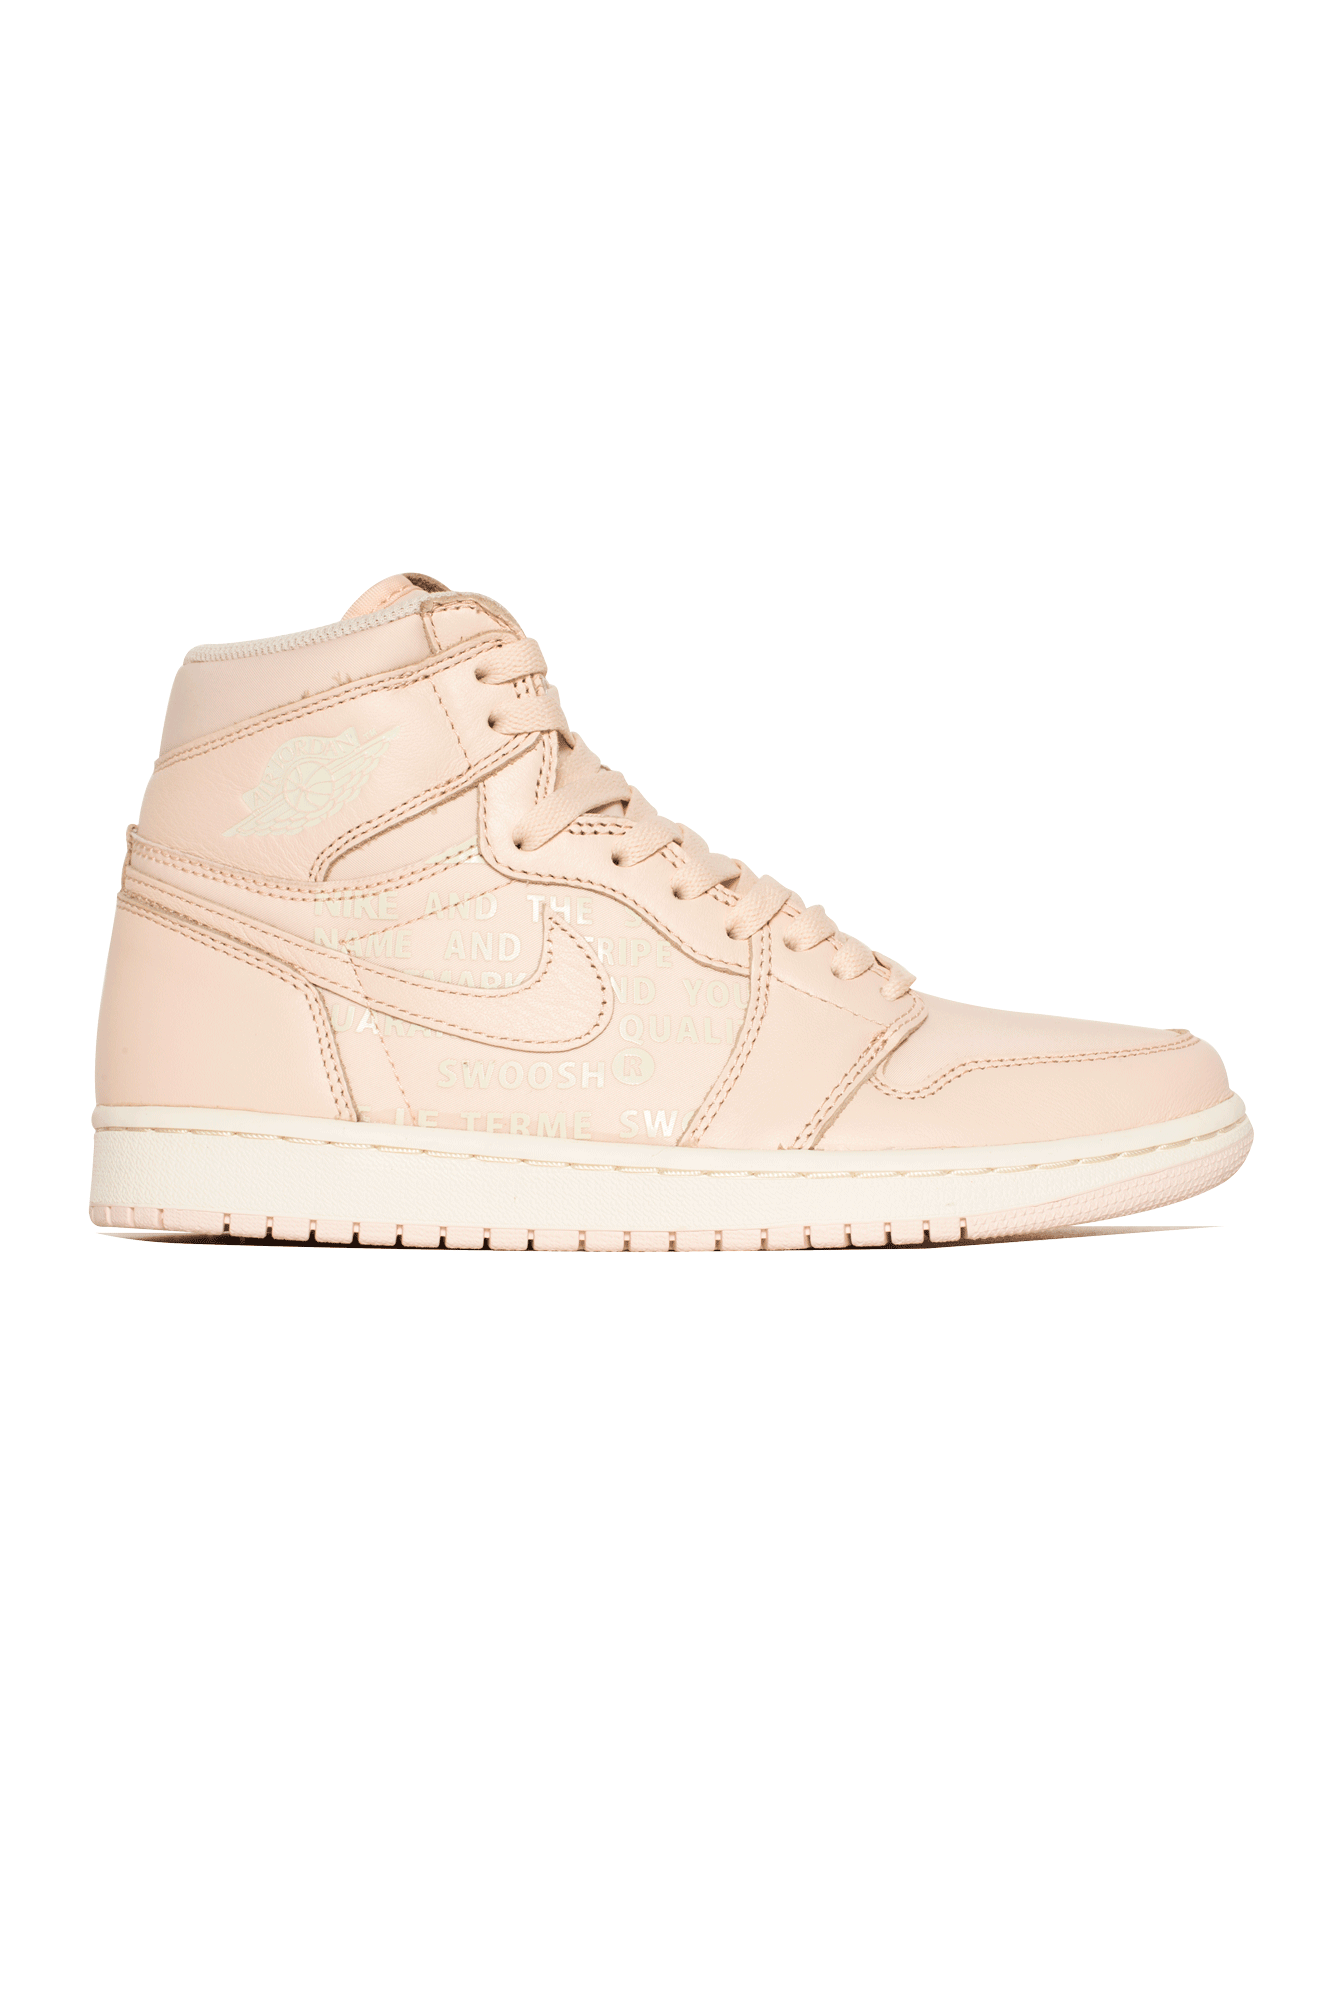 Sneakers Air Jordan 1 Retro Hi OG Pink - One Block Down